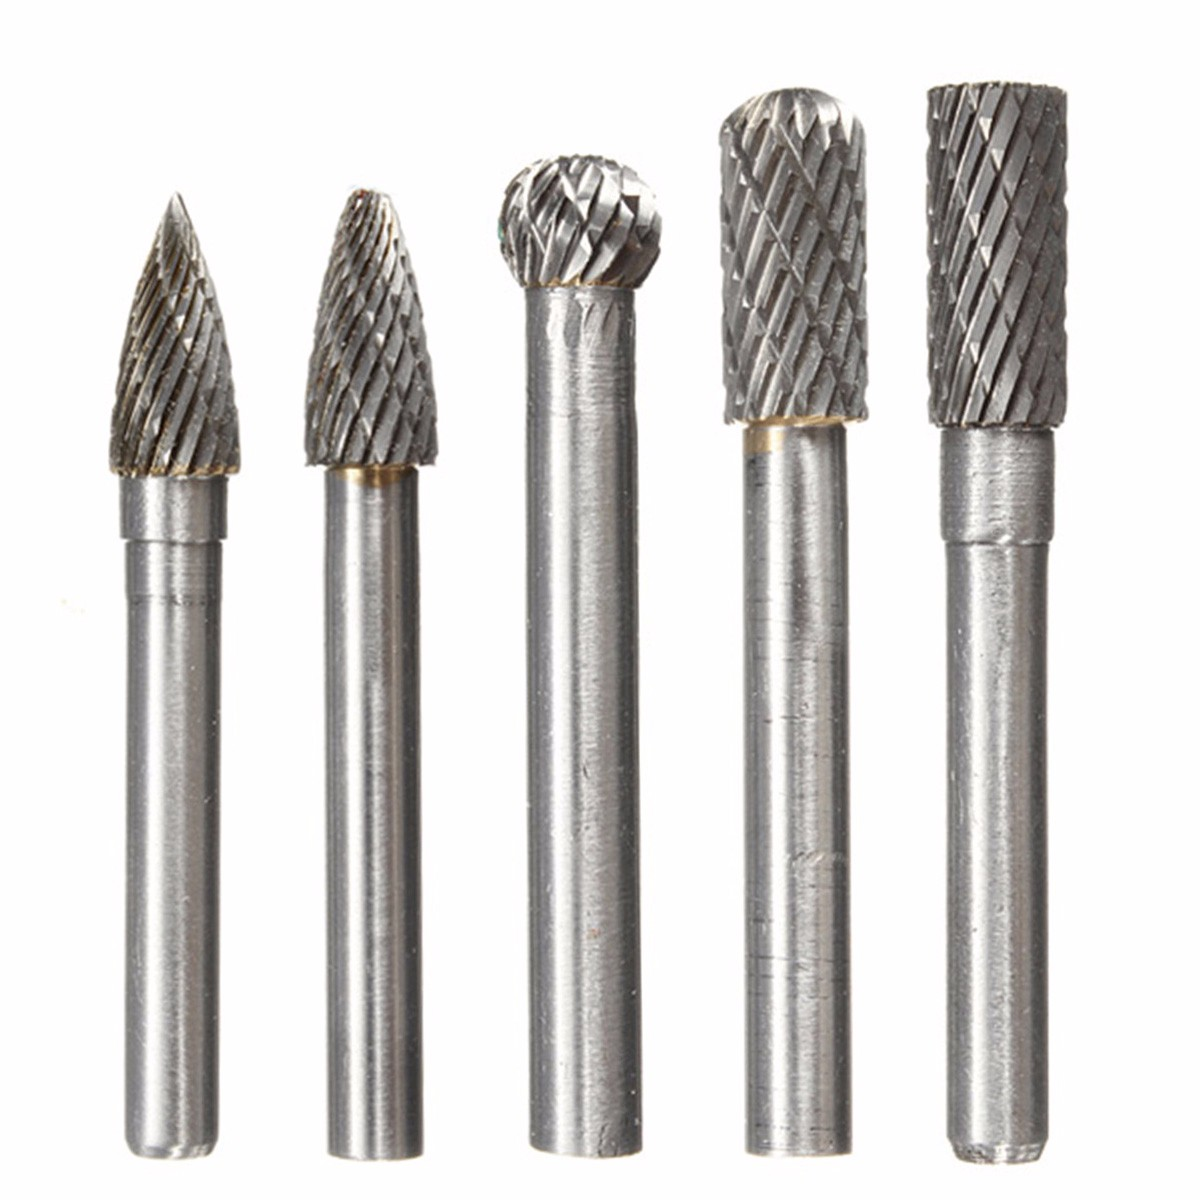 1PC Type A/C/D/F/G 6*8MM Head Tungsten Carbide Rotary Tool Point Burr Die Grinder Abrasive Tools Drill Milling Carving Bit Tools hot sale20 x tungsten steel solid carbide burrs for rotary drill die grinder carving